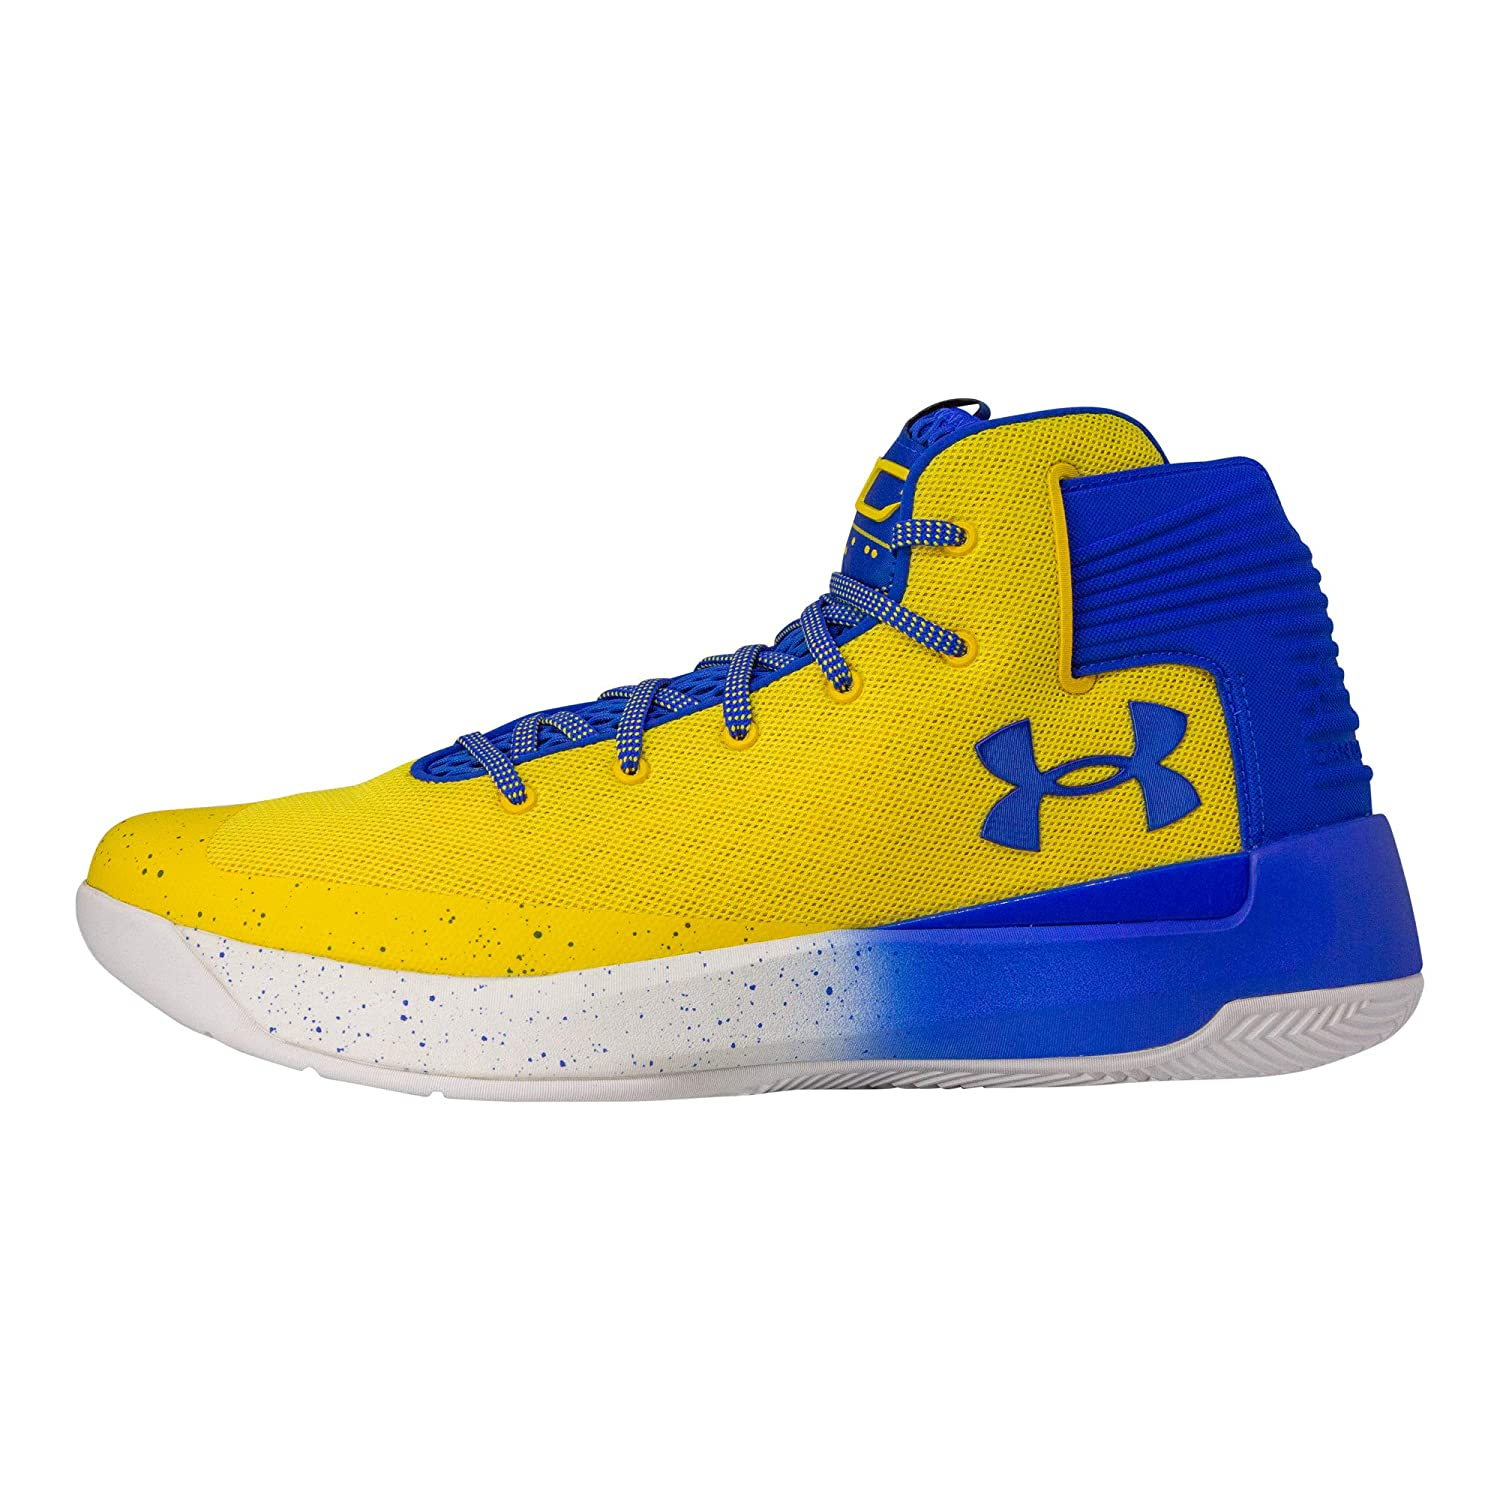 Under Armour Mens Curry 3 Basketball Shoes